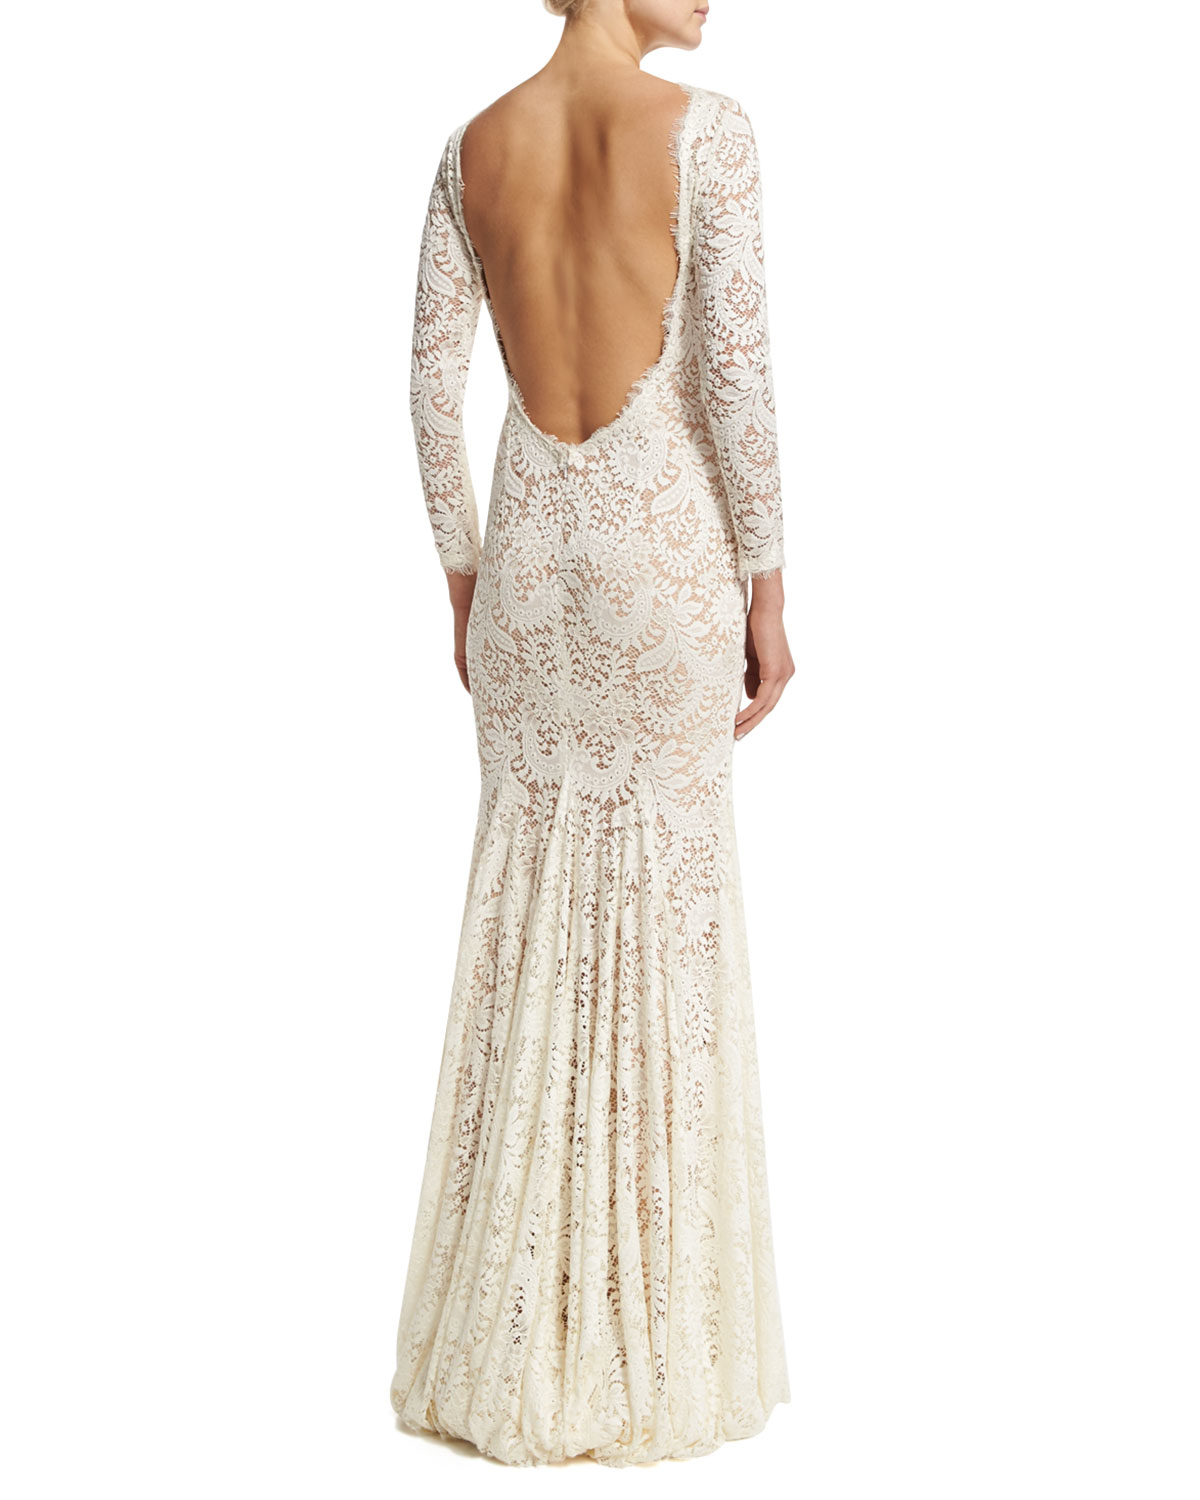 Lyst - Jovani Long-sleeve Lace Mermaid Gown in White